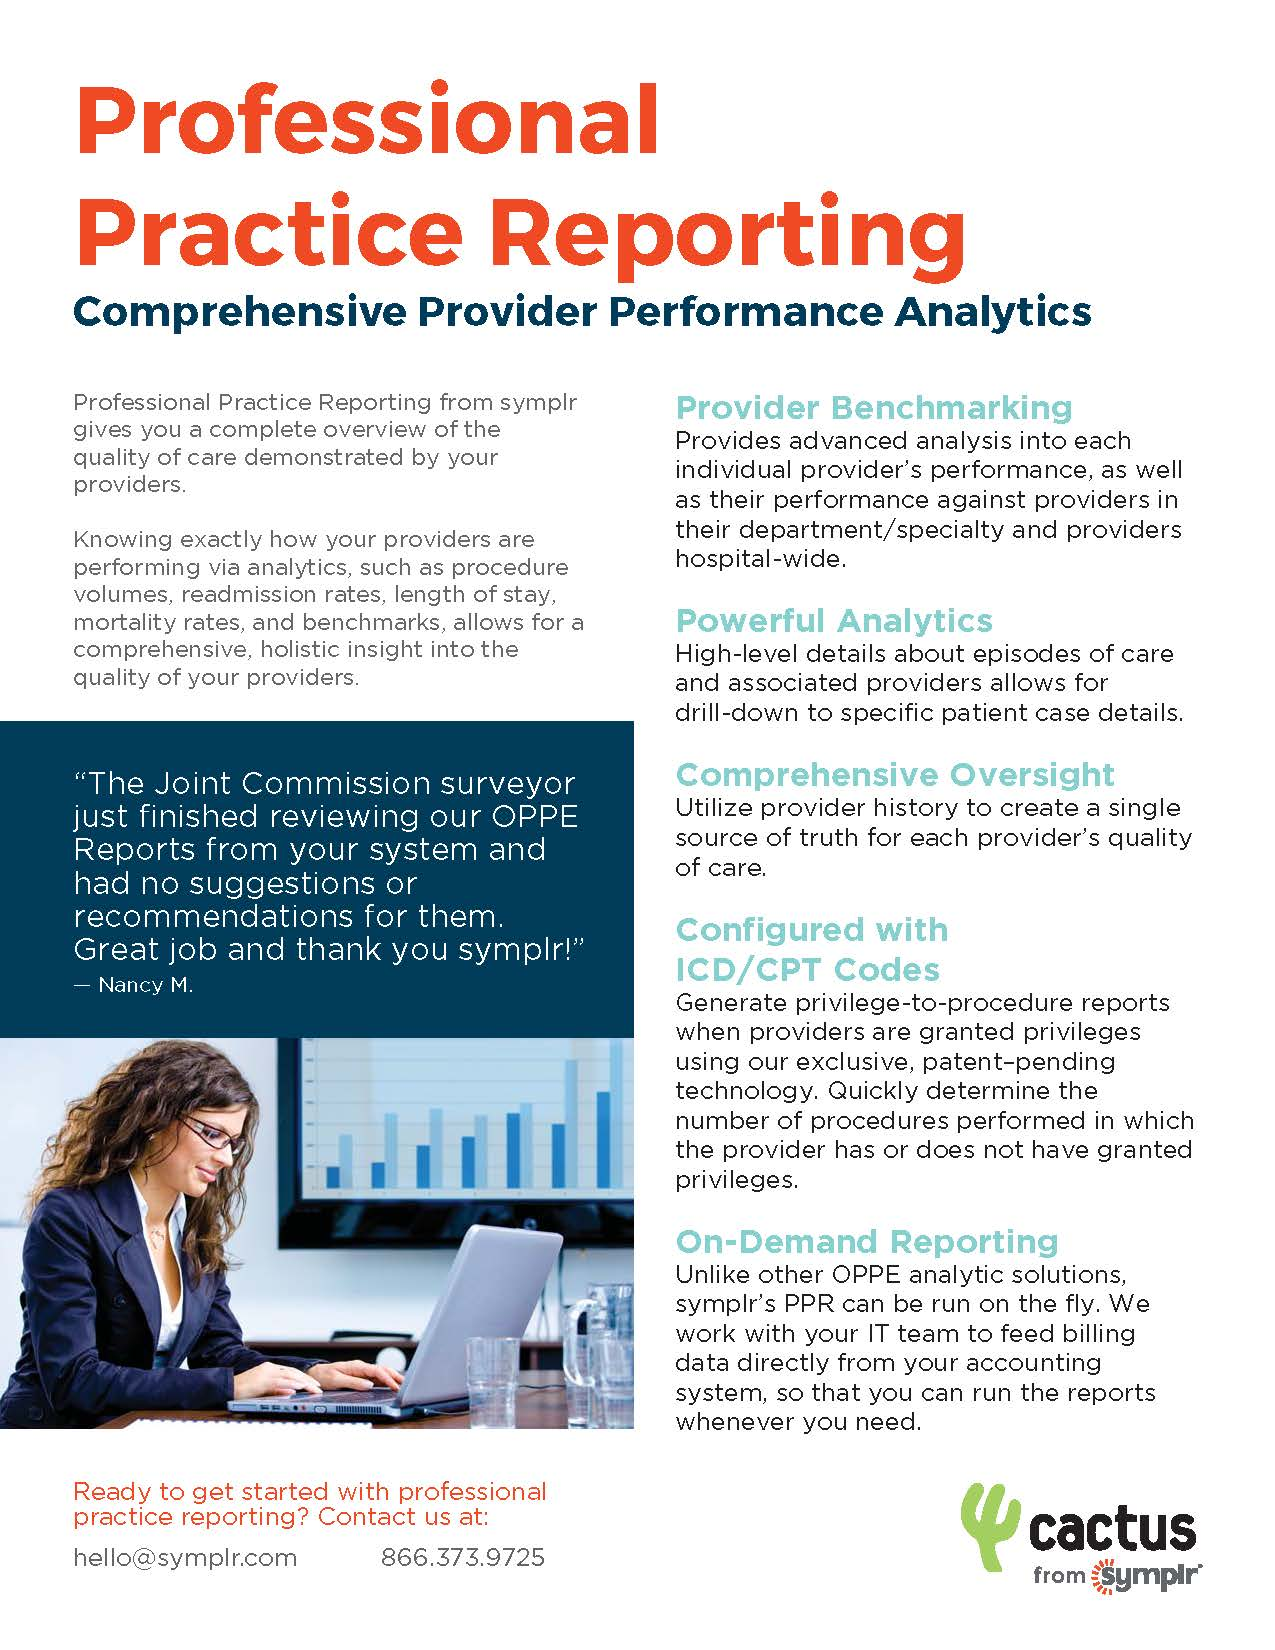 Analytics for Improved Professional Practice Reporting | symplr